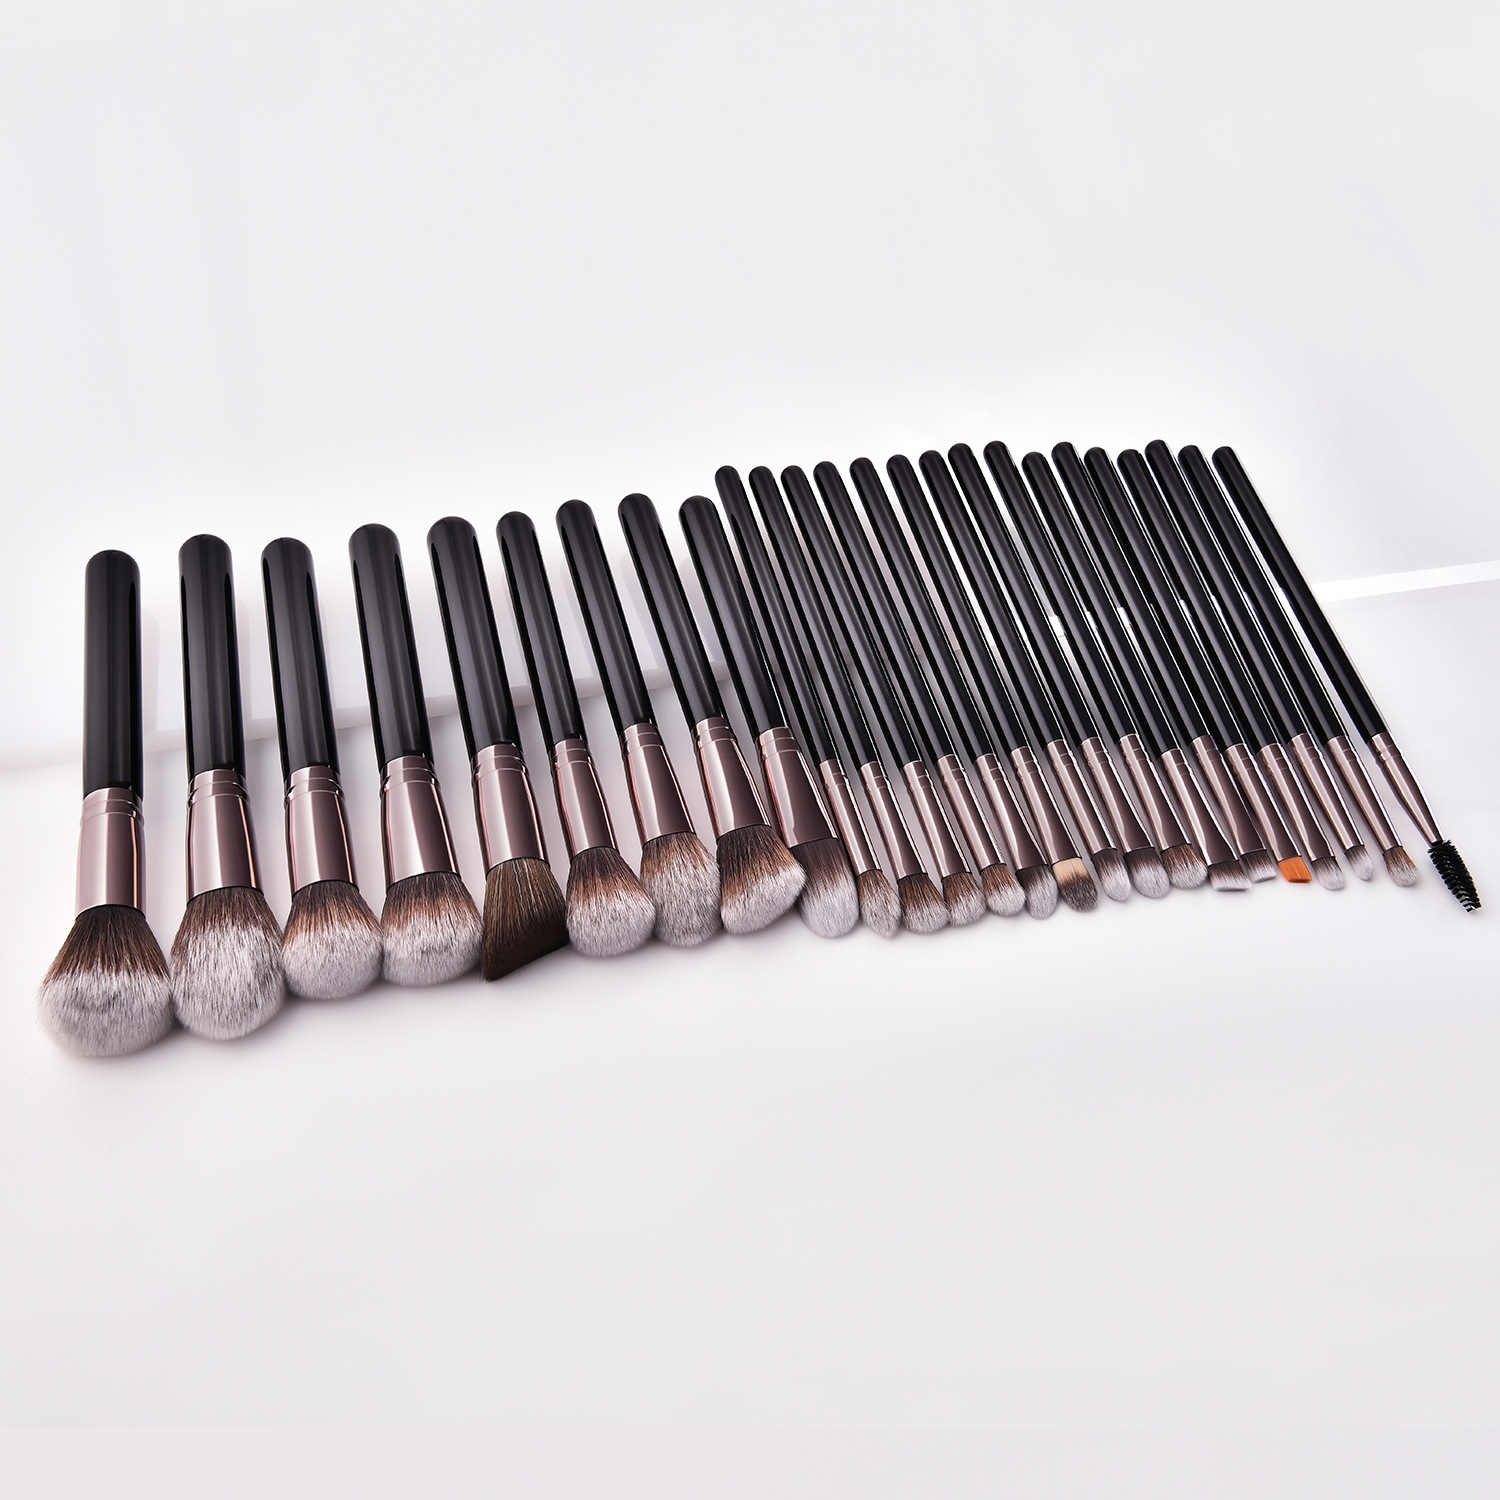 Best Seller Online Vegan Makeup Tool 25PCS Multipurpose Make Up Brushes Professional Makeup Brush Set for Beauty Makeup